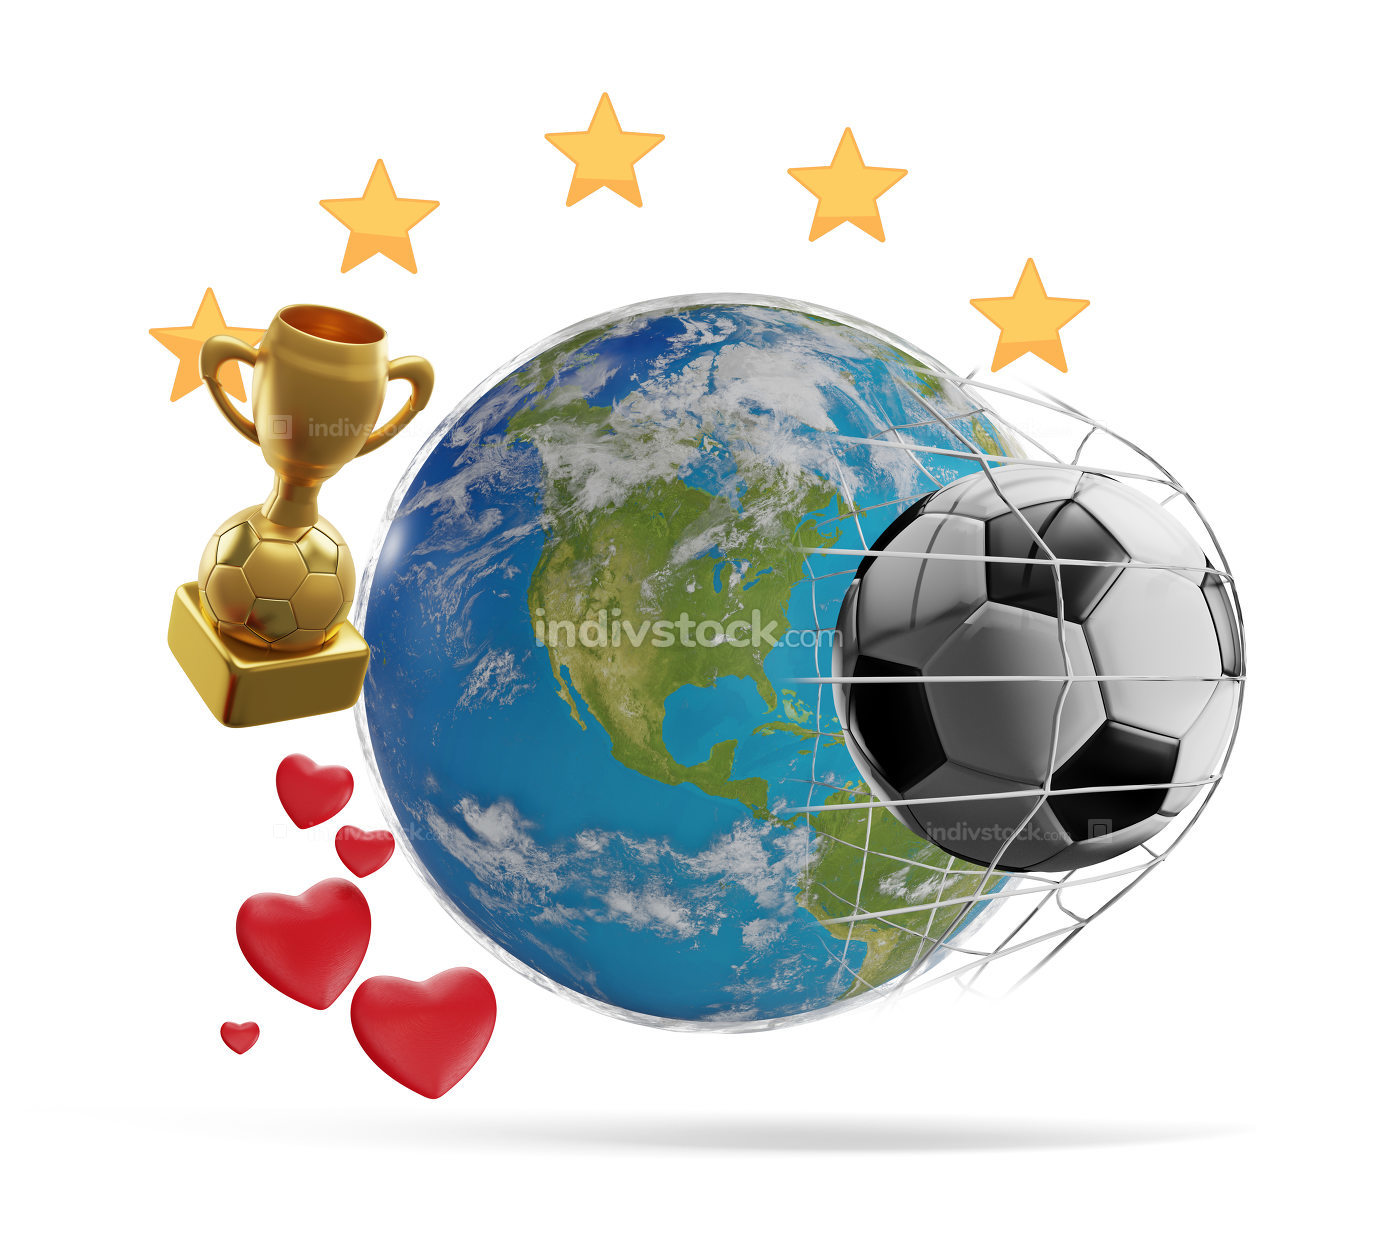 earth globe soccer theme 3d-illustration. elements of this image